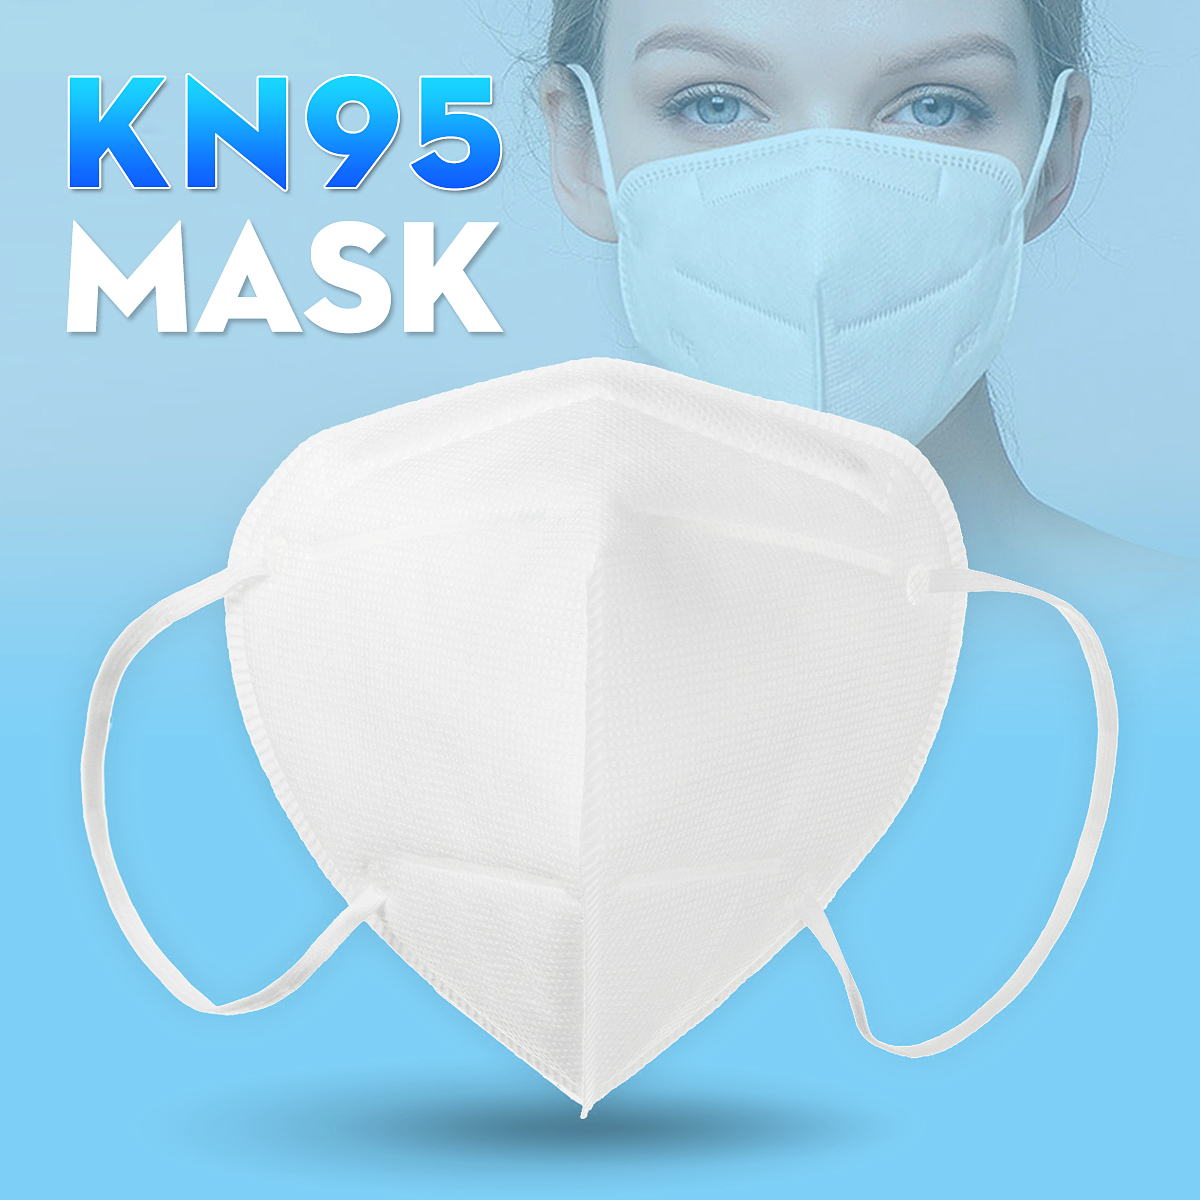 1Pcs N95 Mask Respirator Mask Air Filter Anti-Dust Anti Smog KN95 Masks Windproof Pm2.5 Safety Protective Mouth Face Mask